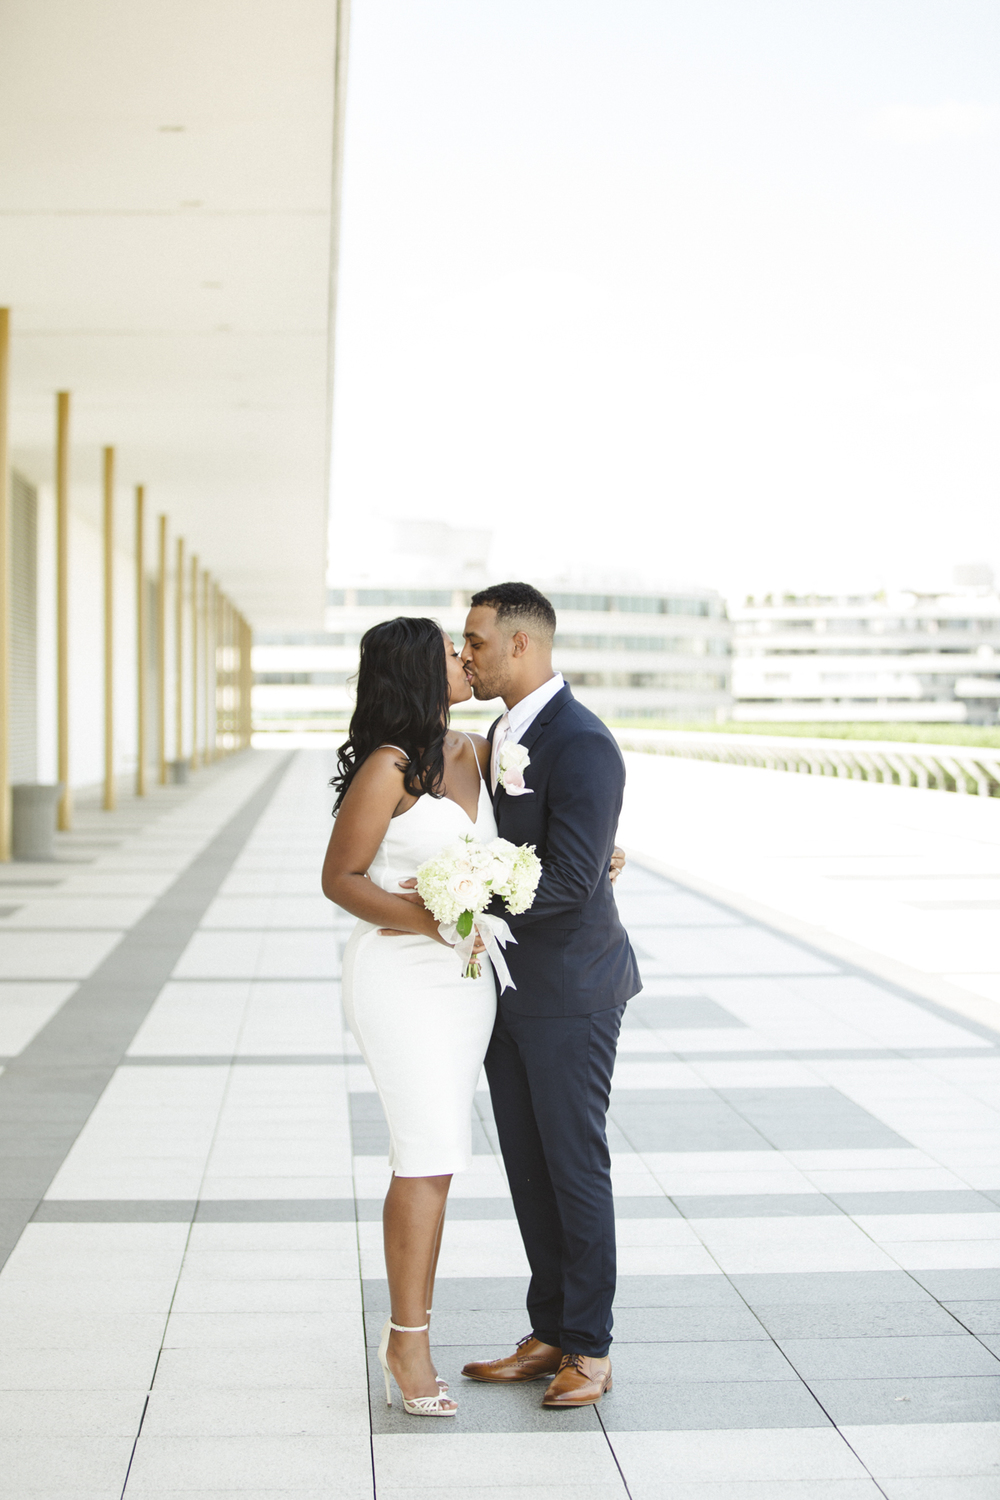 Vness-Photography_Washington-DC-Wedding-Photographer_Kennedy-Center-Wedding-21.JPG